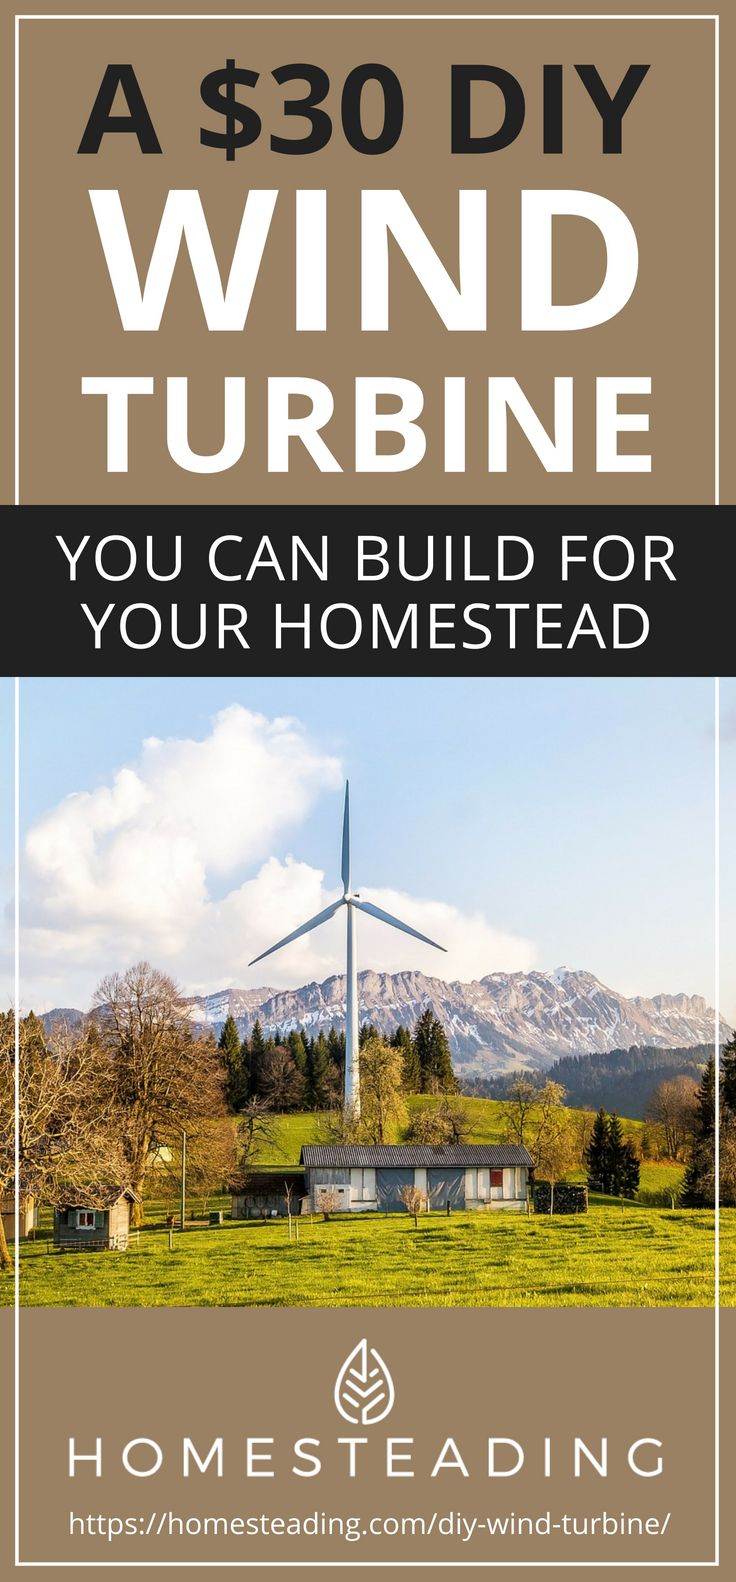 Pinterest Placard | A $30 DIY Wind Turbine You Can Build For Your Homestead